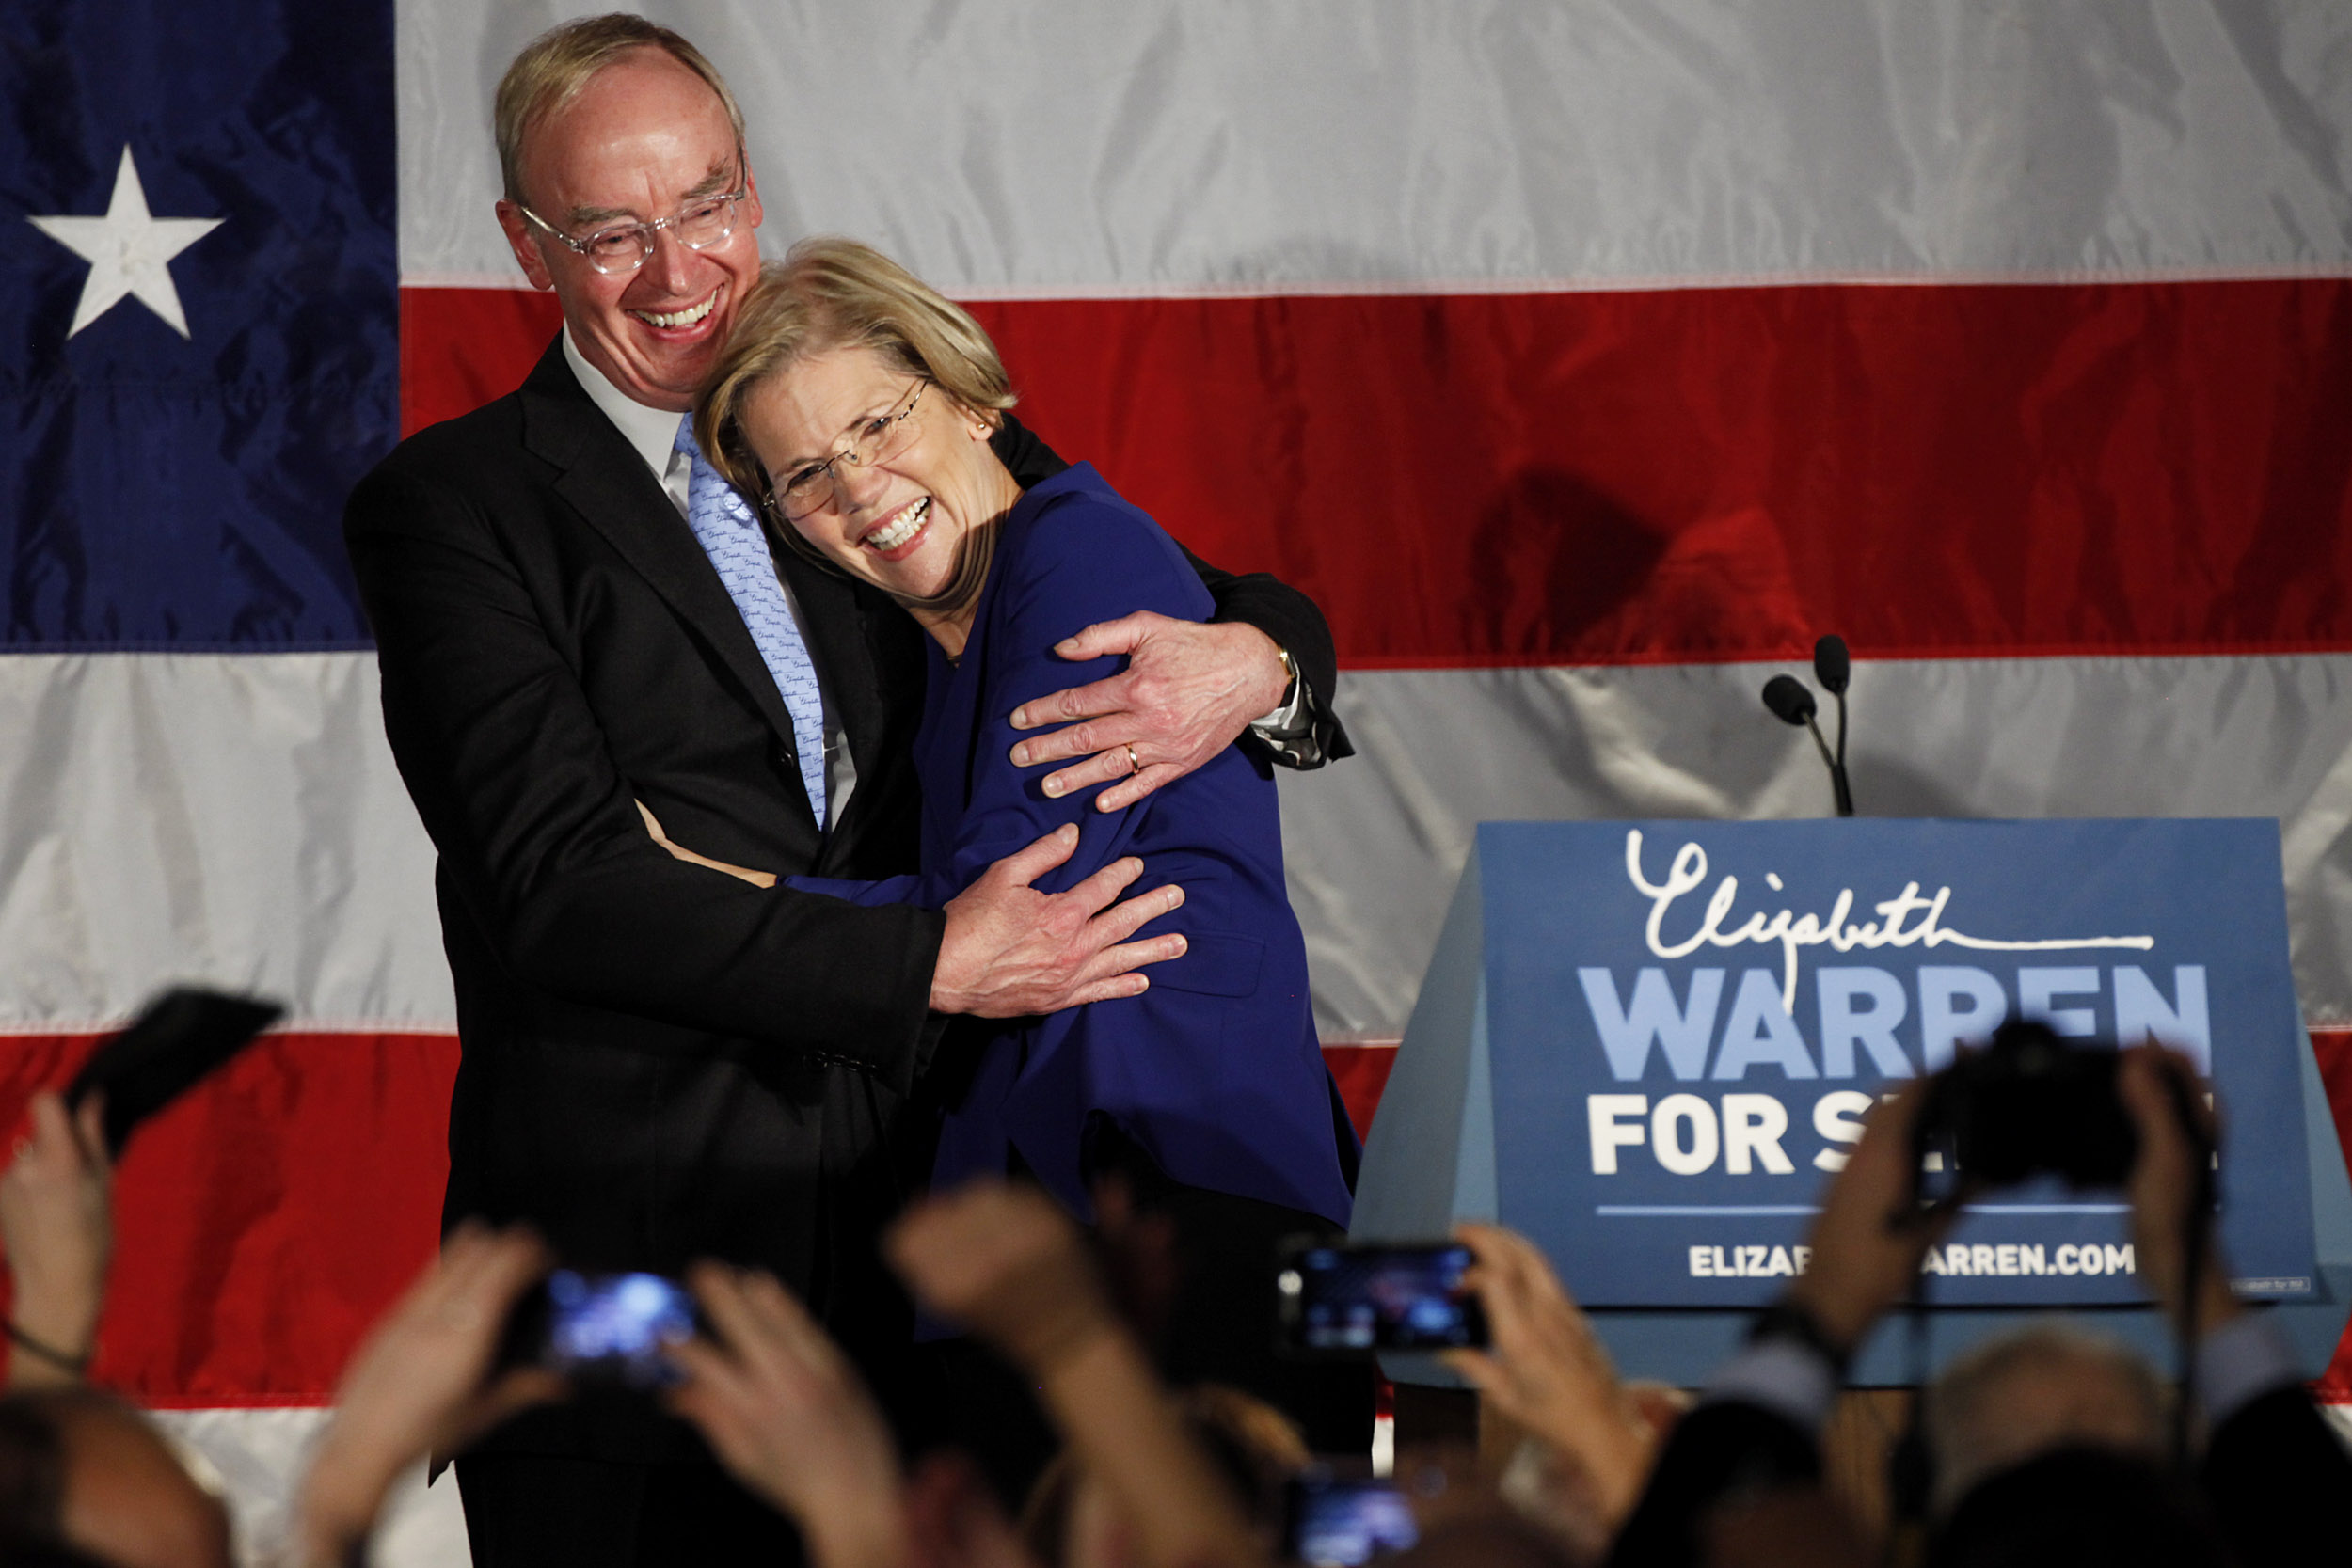 Elizabeth Warren and Bruce Mann at campaign rally